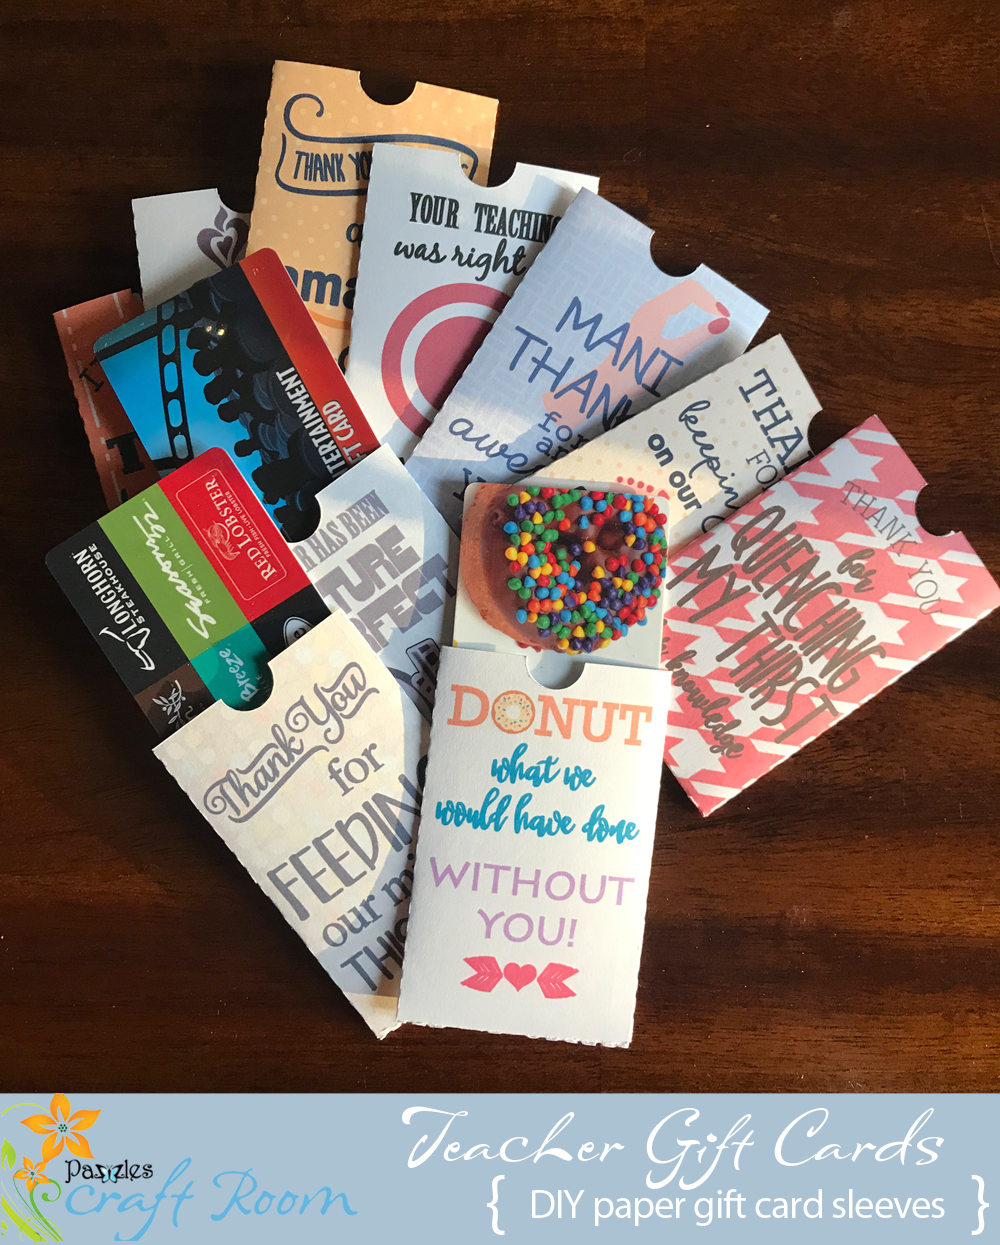 Thank You Teacher Gift Card Collection Pazzles Craft Room